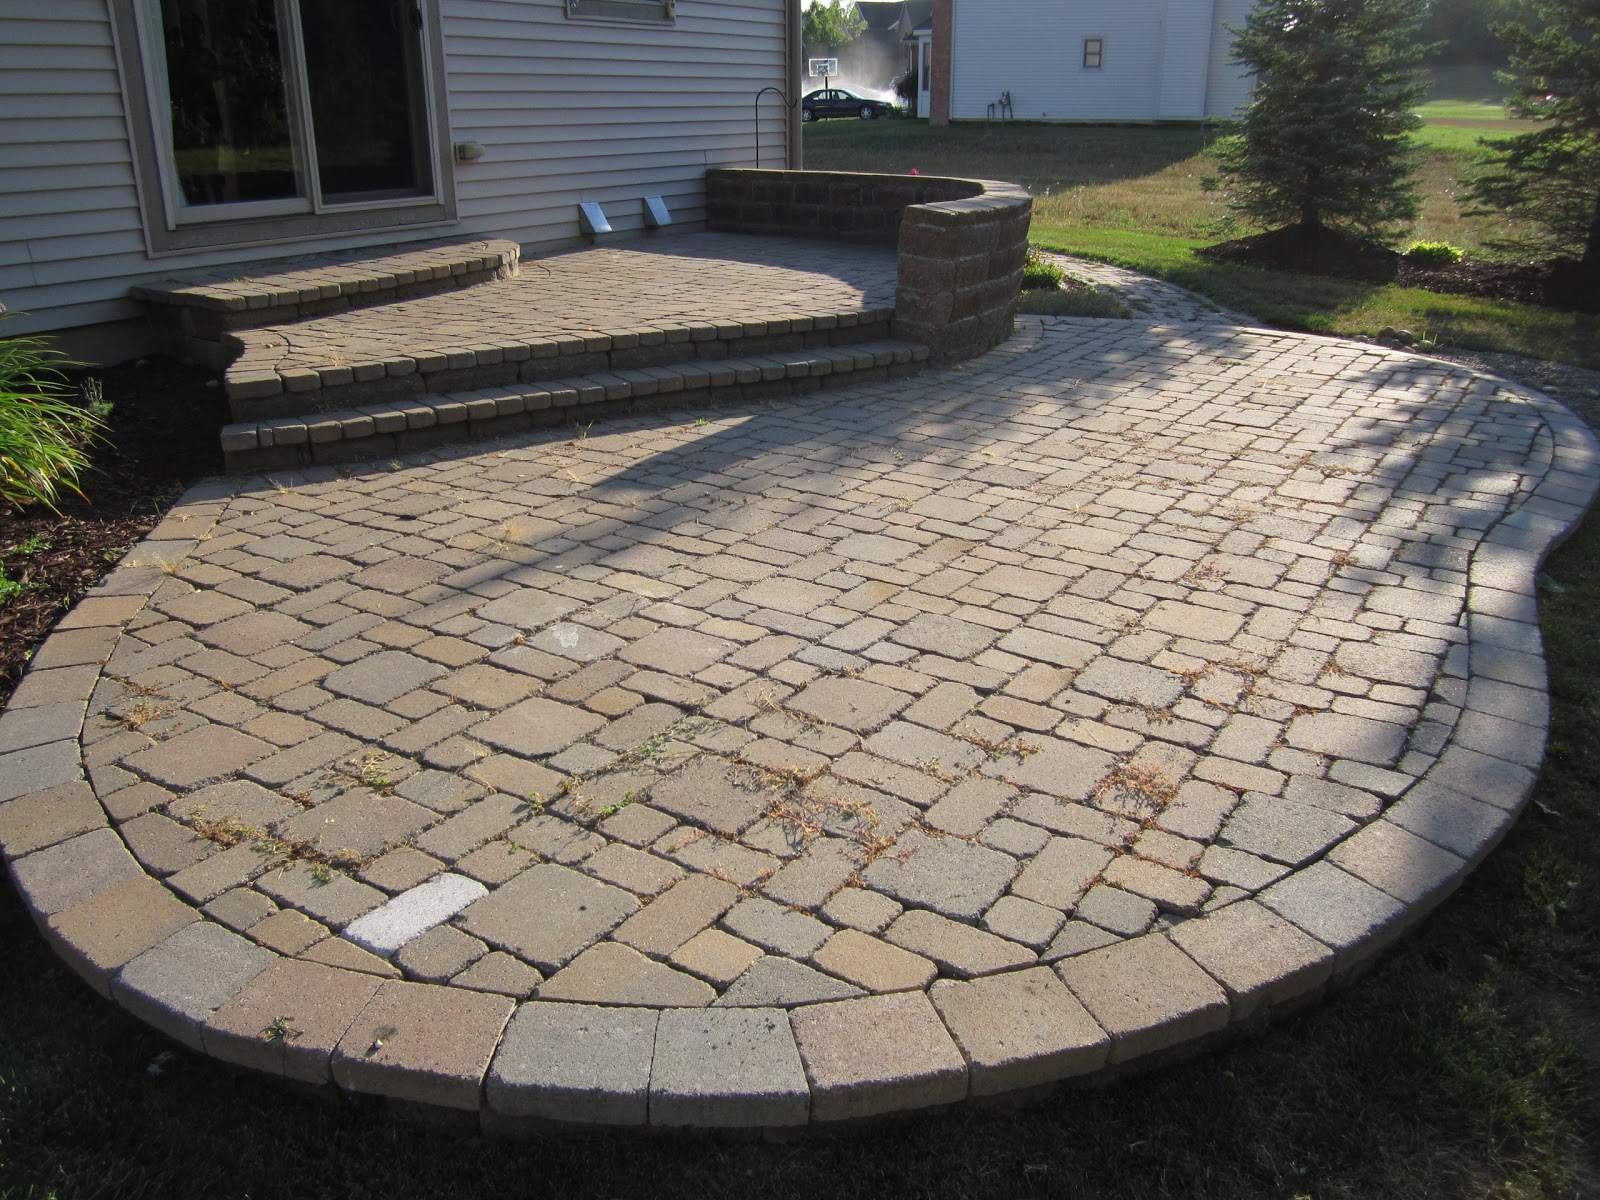 Multi Level Paver Patio Is Reconstructed To One Level For Added Space